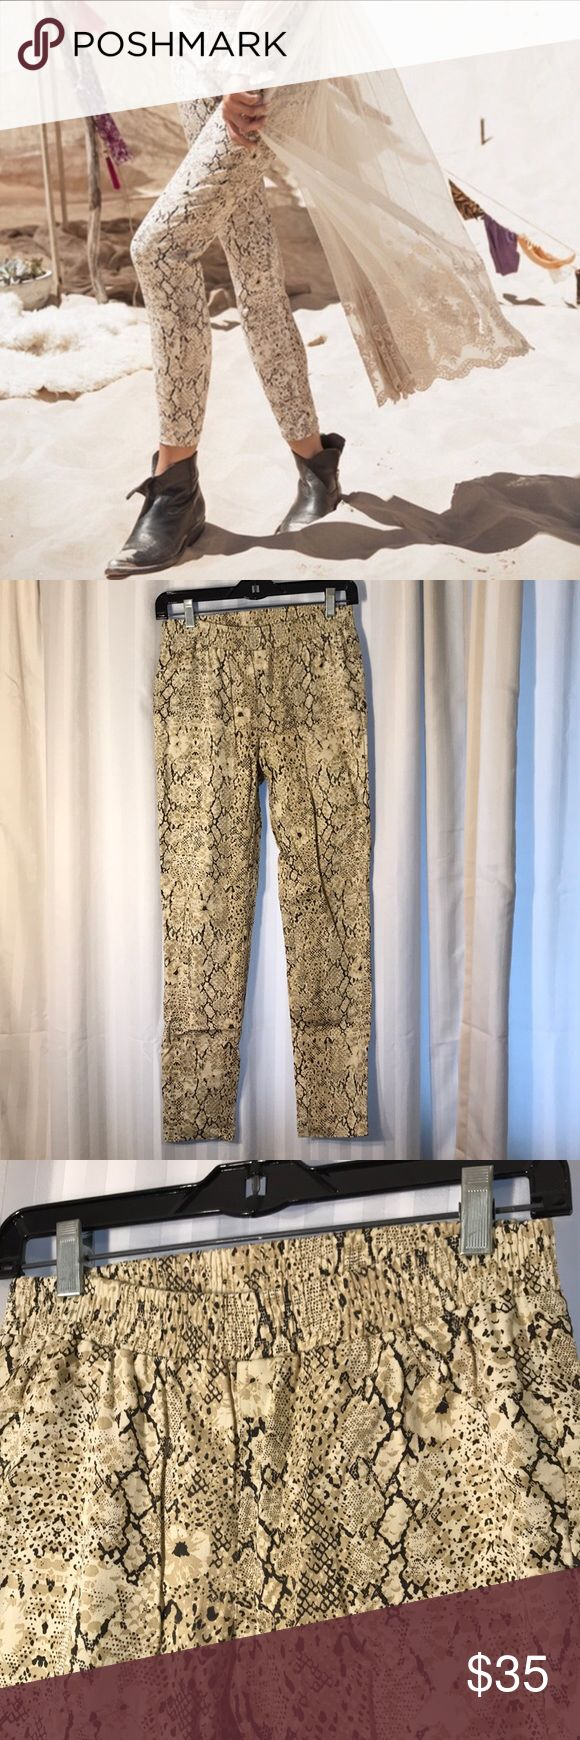 Spell & The Gypsy Snake Print Pants Snake print pants from Spell. Elastic waist. Size medium Spell & The Gypsy Collective Pants